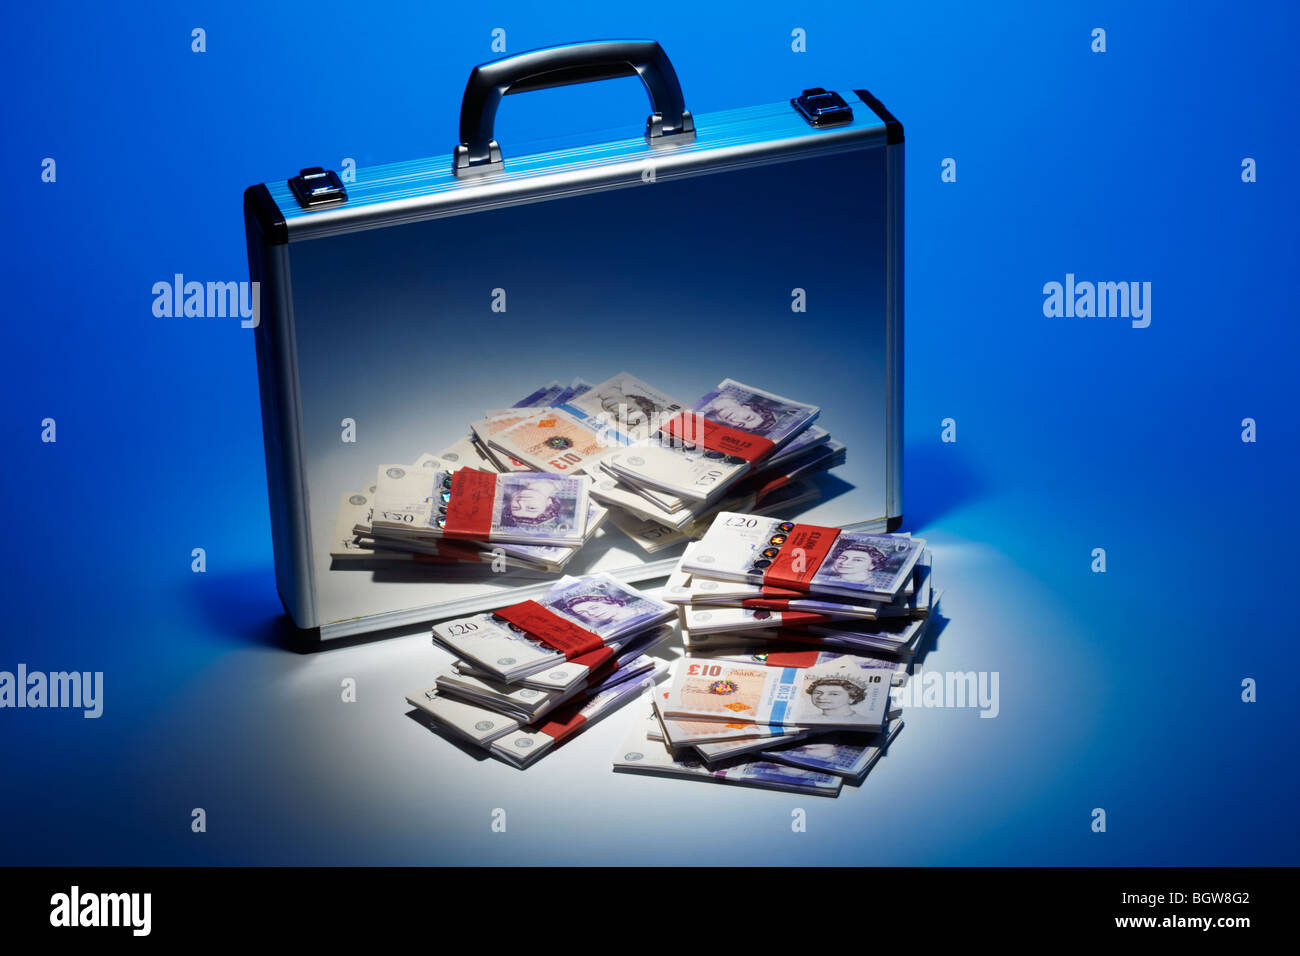 Bank Notes Stacked Reflected in Silver Brief Case - Stock Image